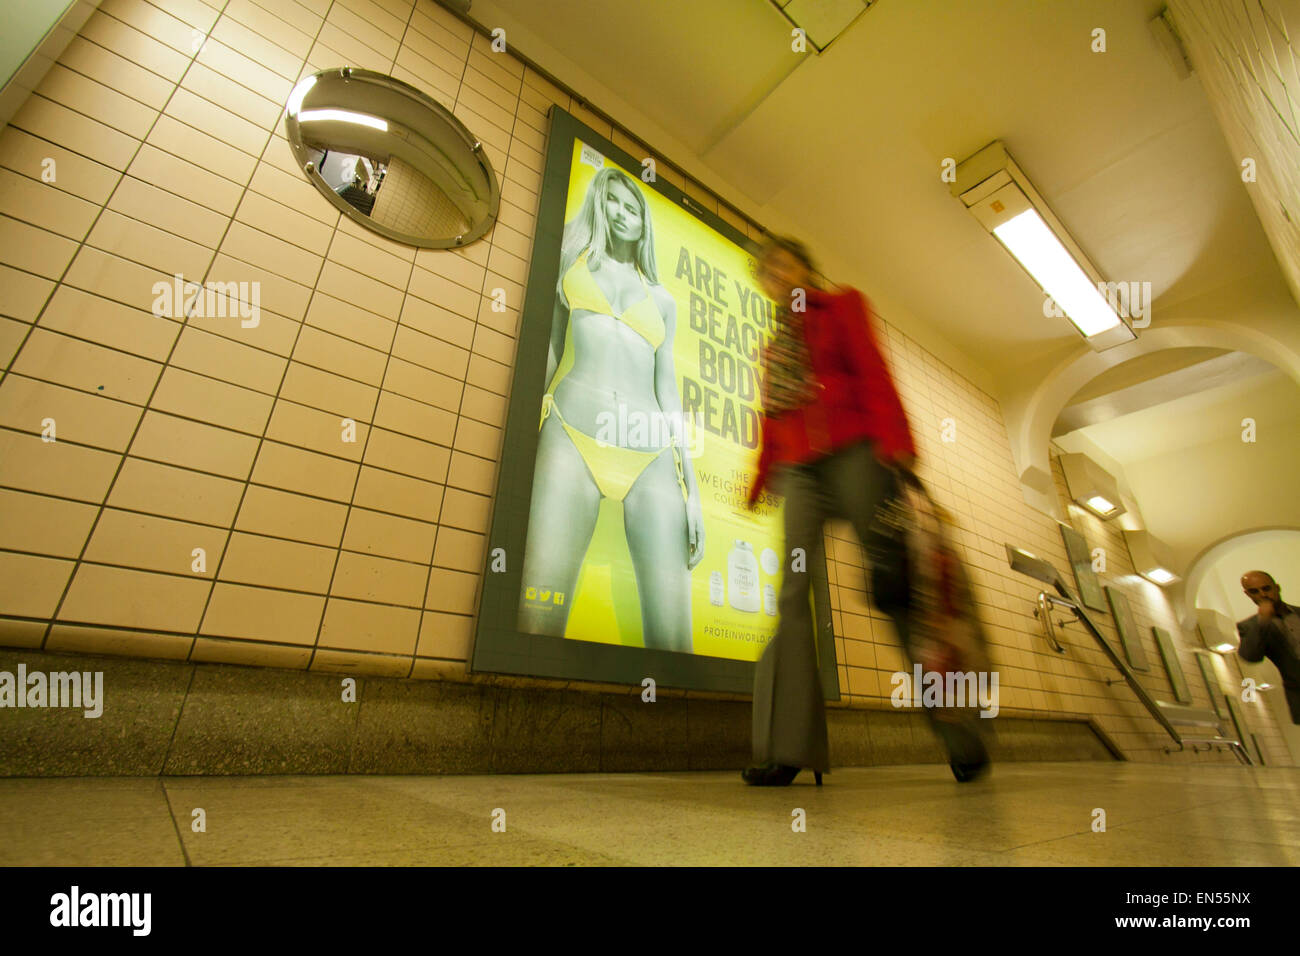 London, UK. 28th April 2015. A dietary poster for World Protein featuring a slim woman wearing a yellow bikini has - Stock Image